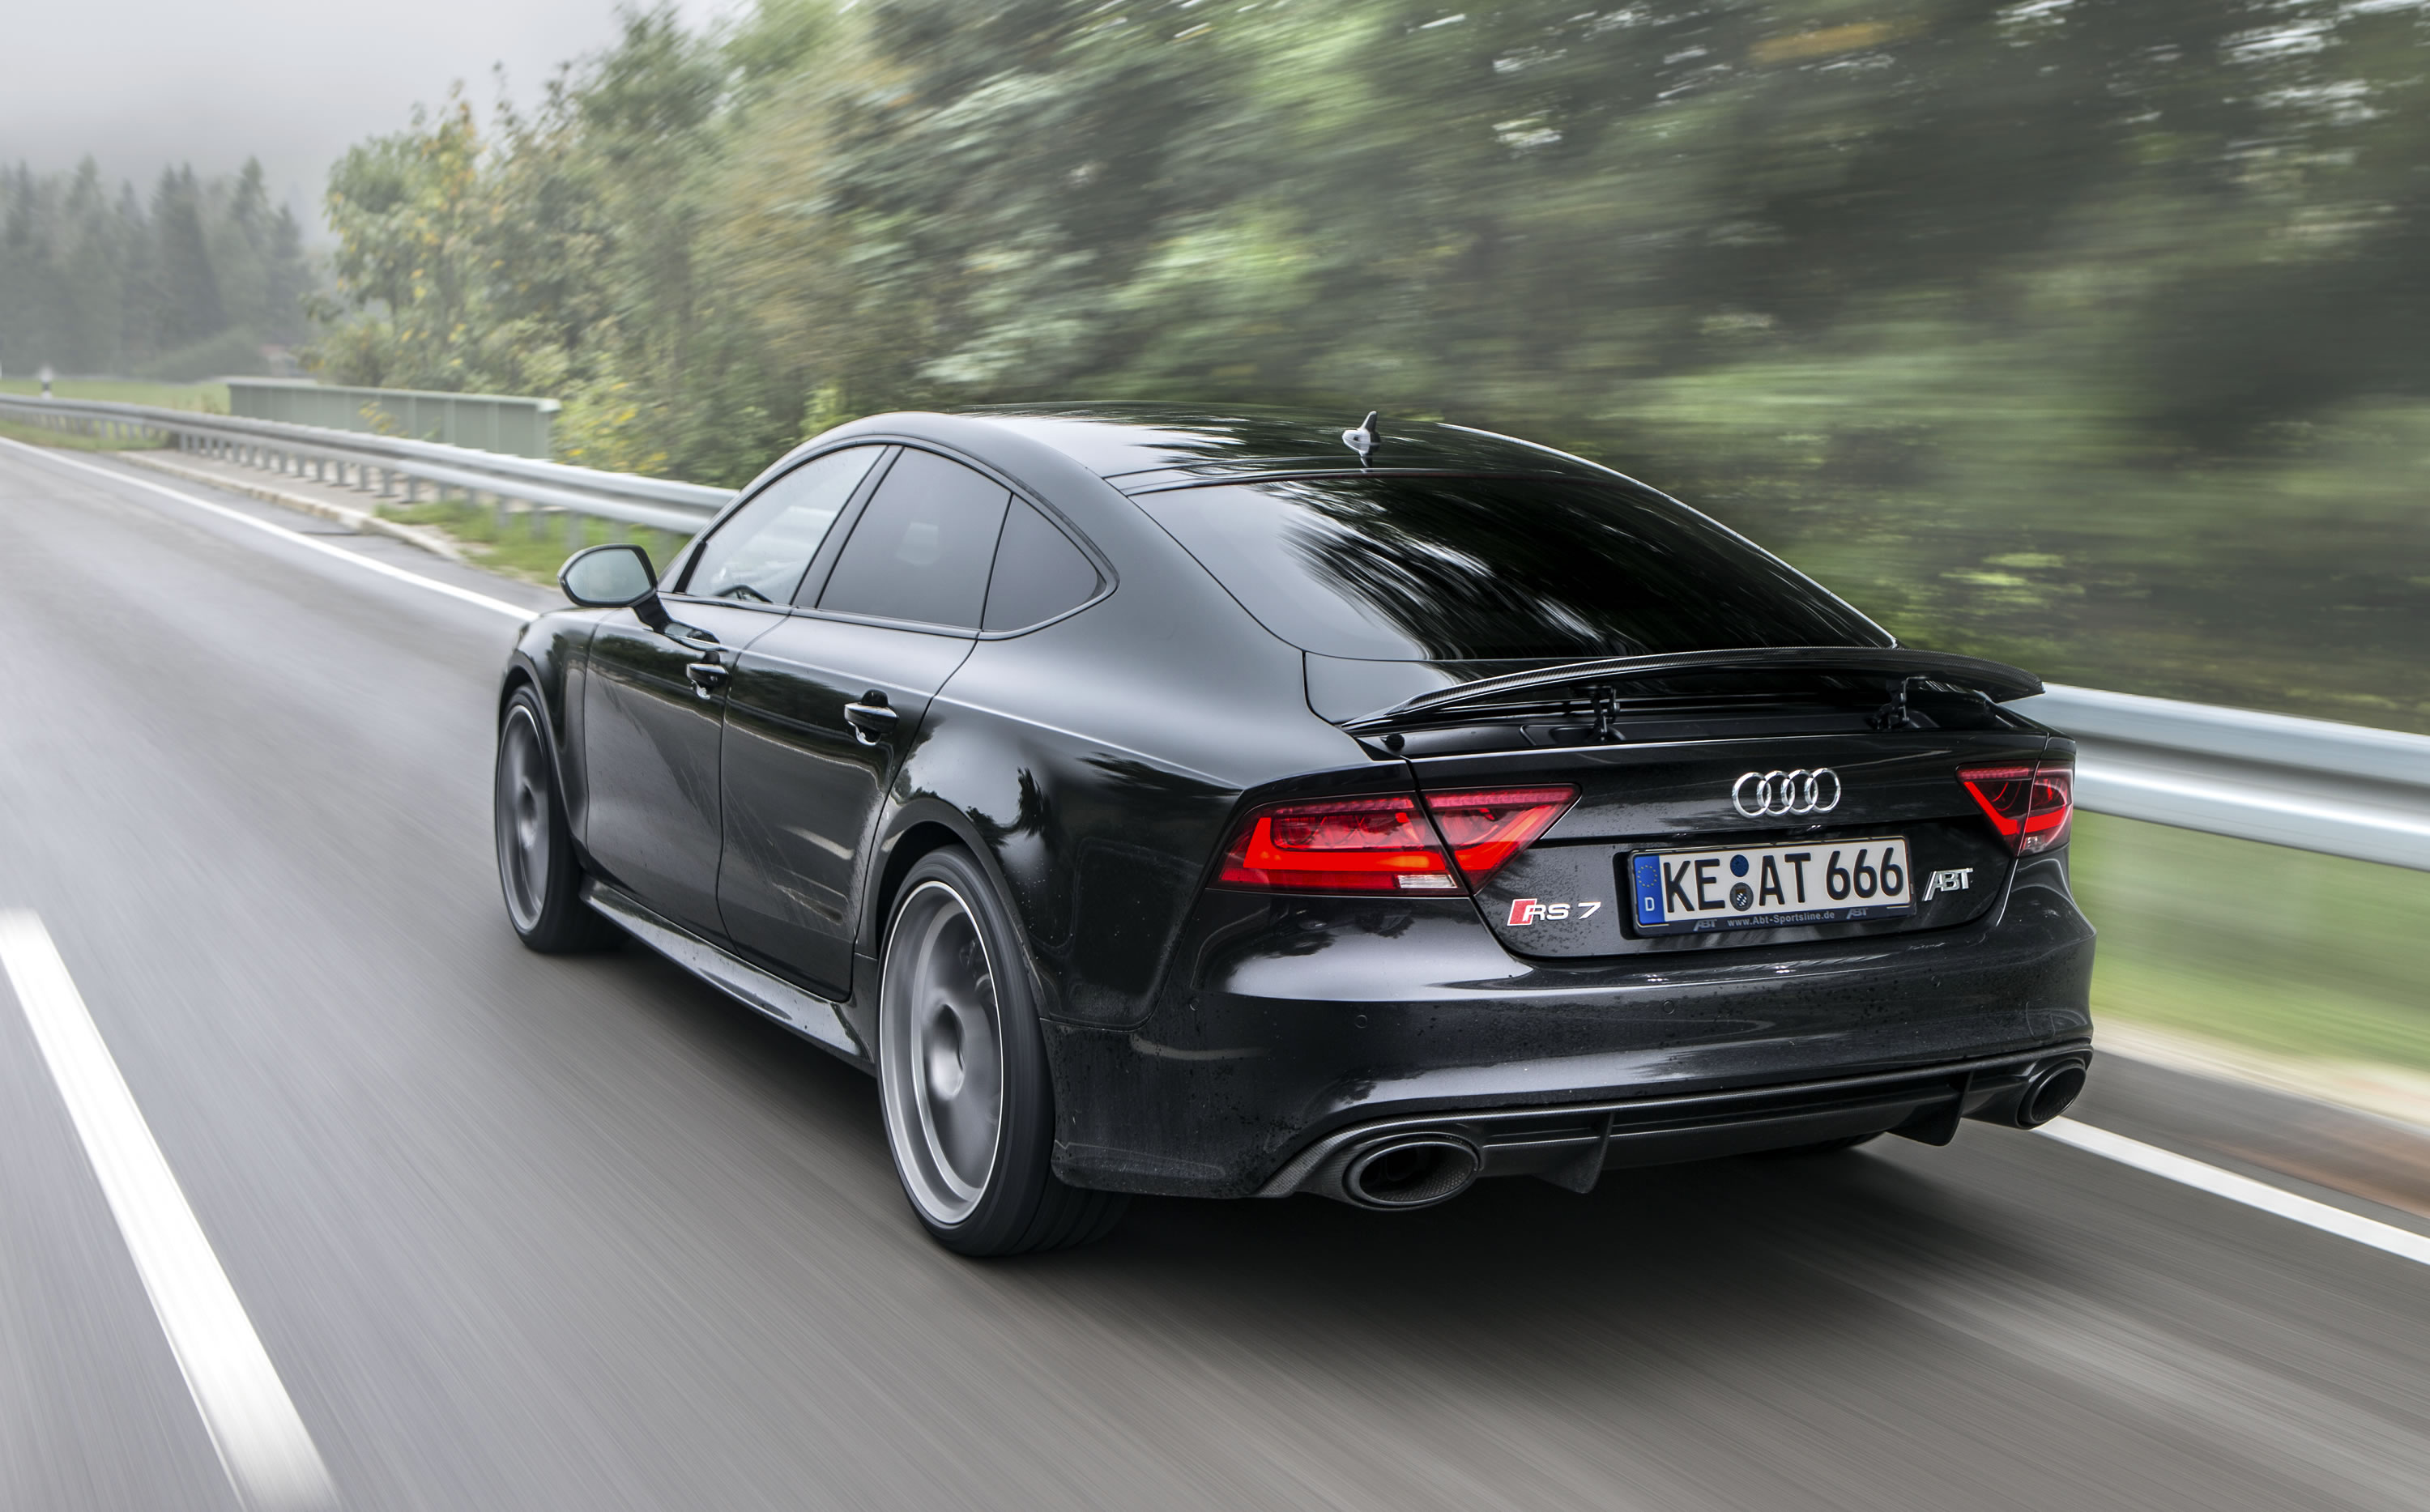 2014 audi rs 7 by abt photos specs and review rs. Black Bedroom Furniture Sets. Home Design Ideas